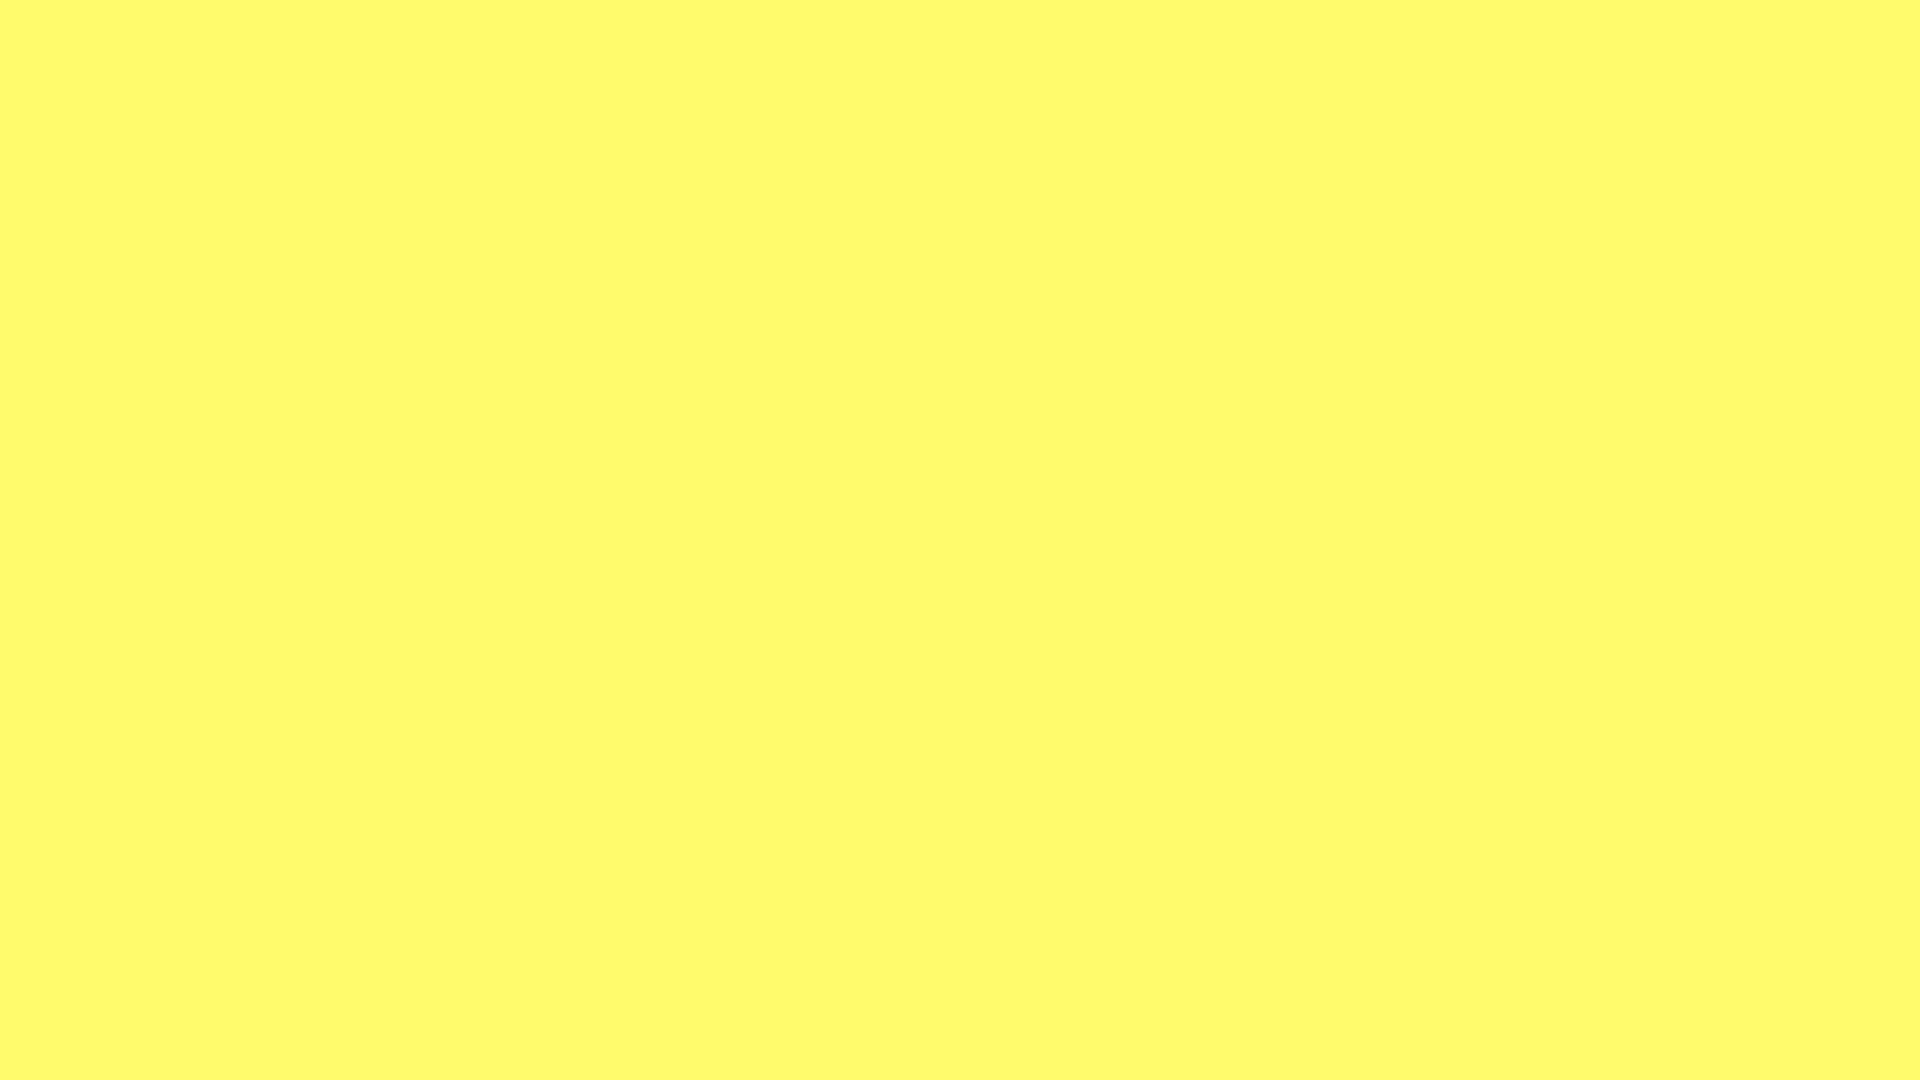 yello color